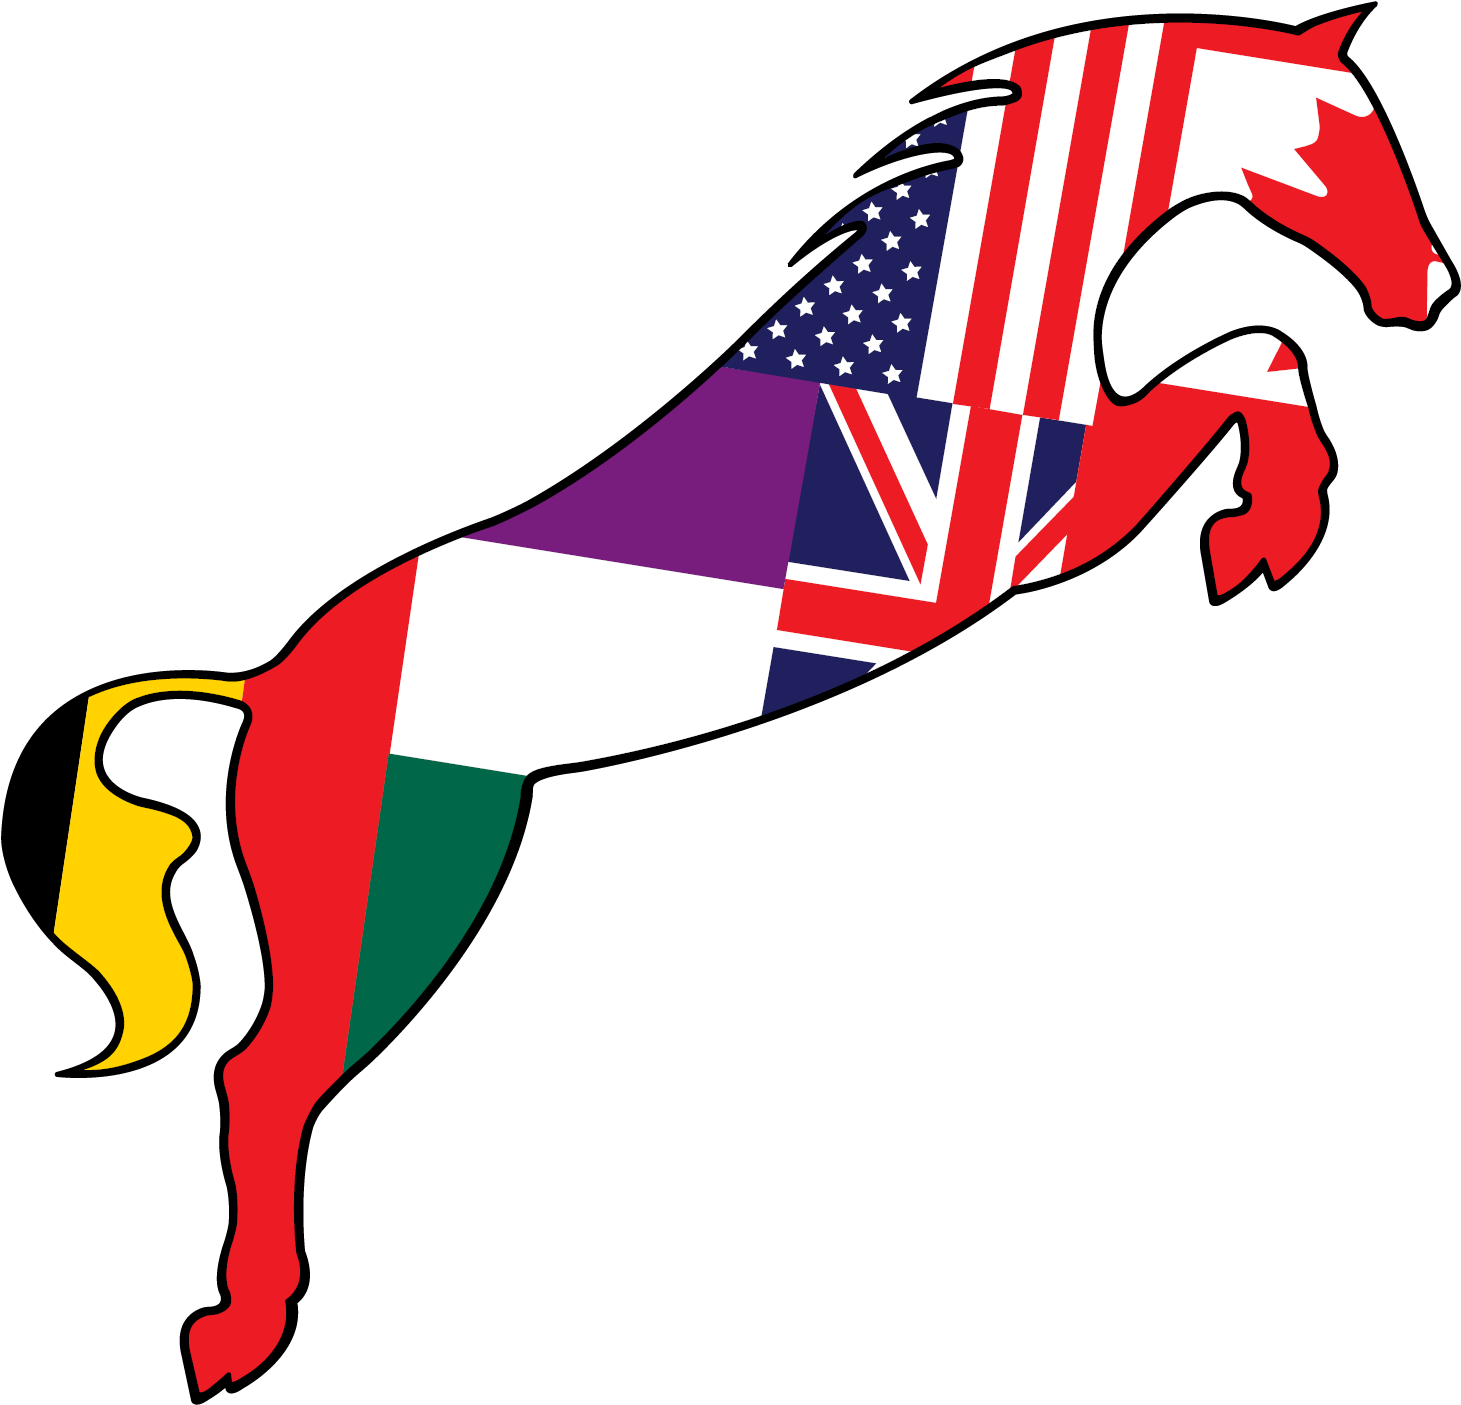 Longines Fei World Cup Jumping And Fei World Cup Dressage - Logo (1500x1500)